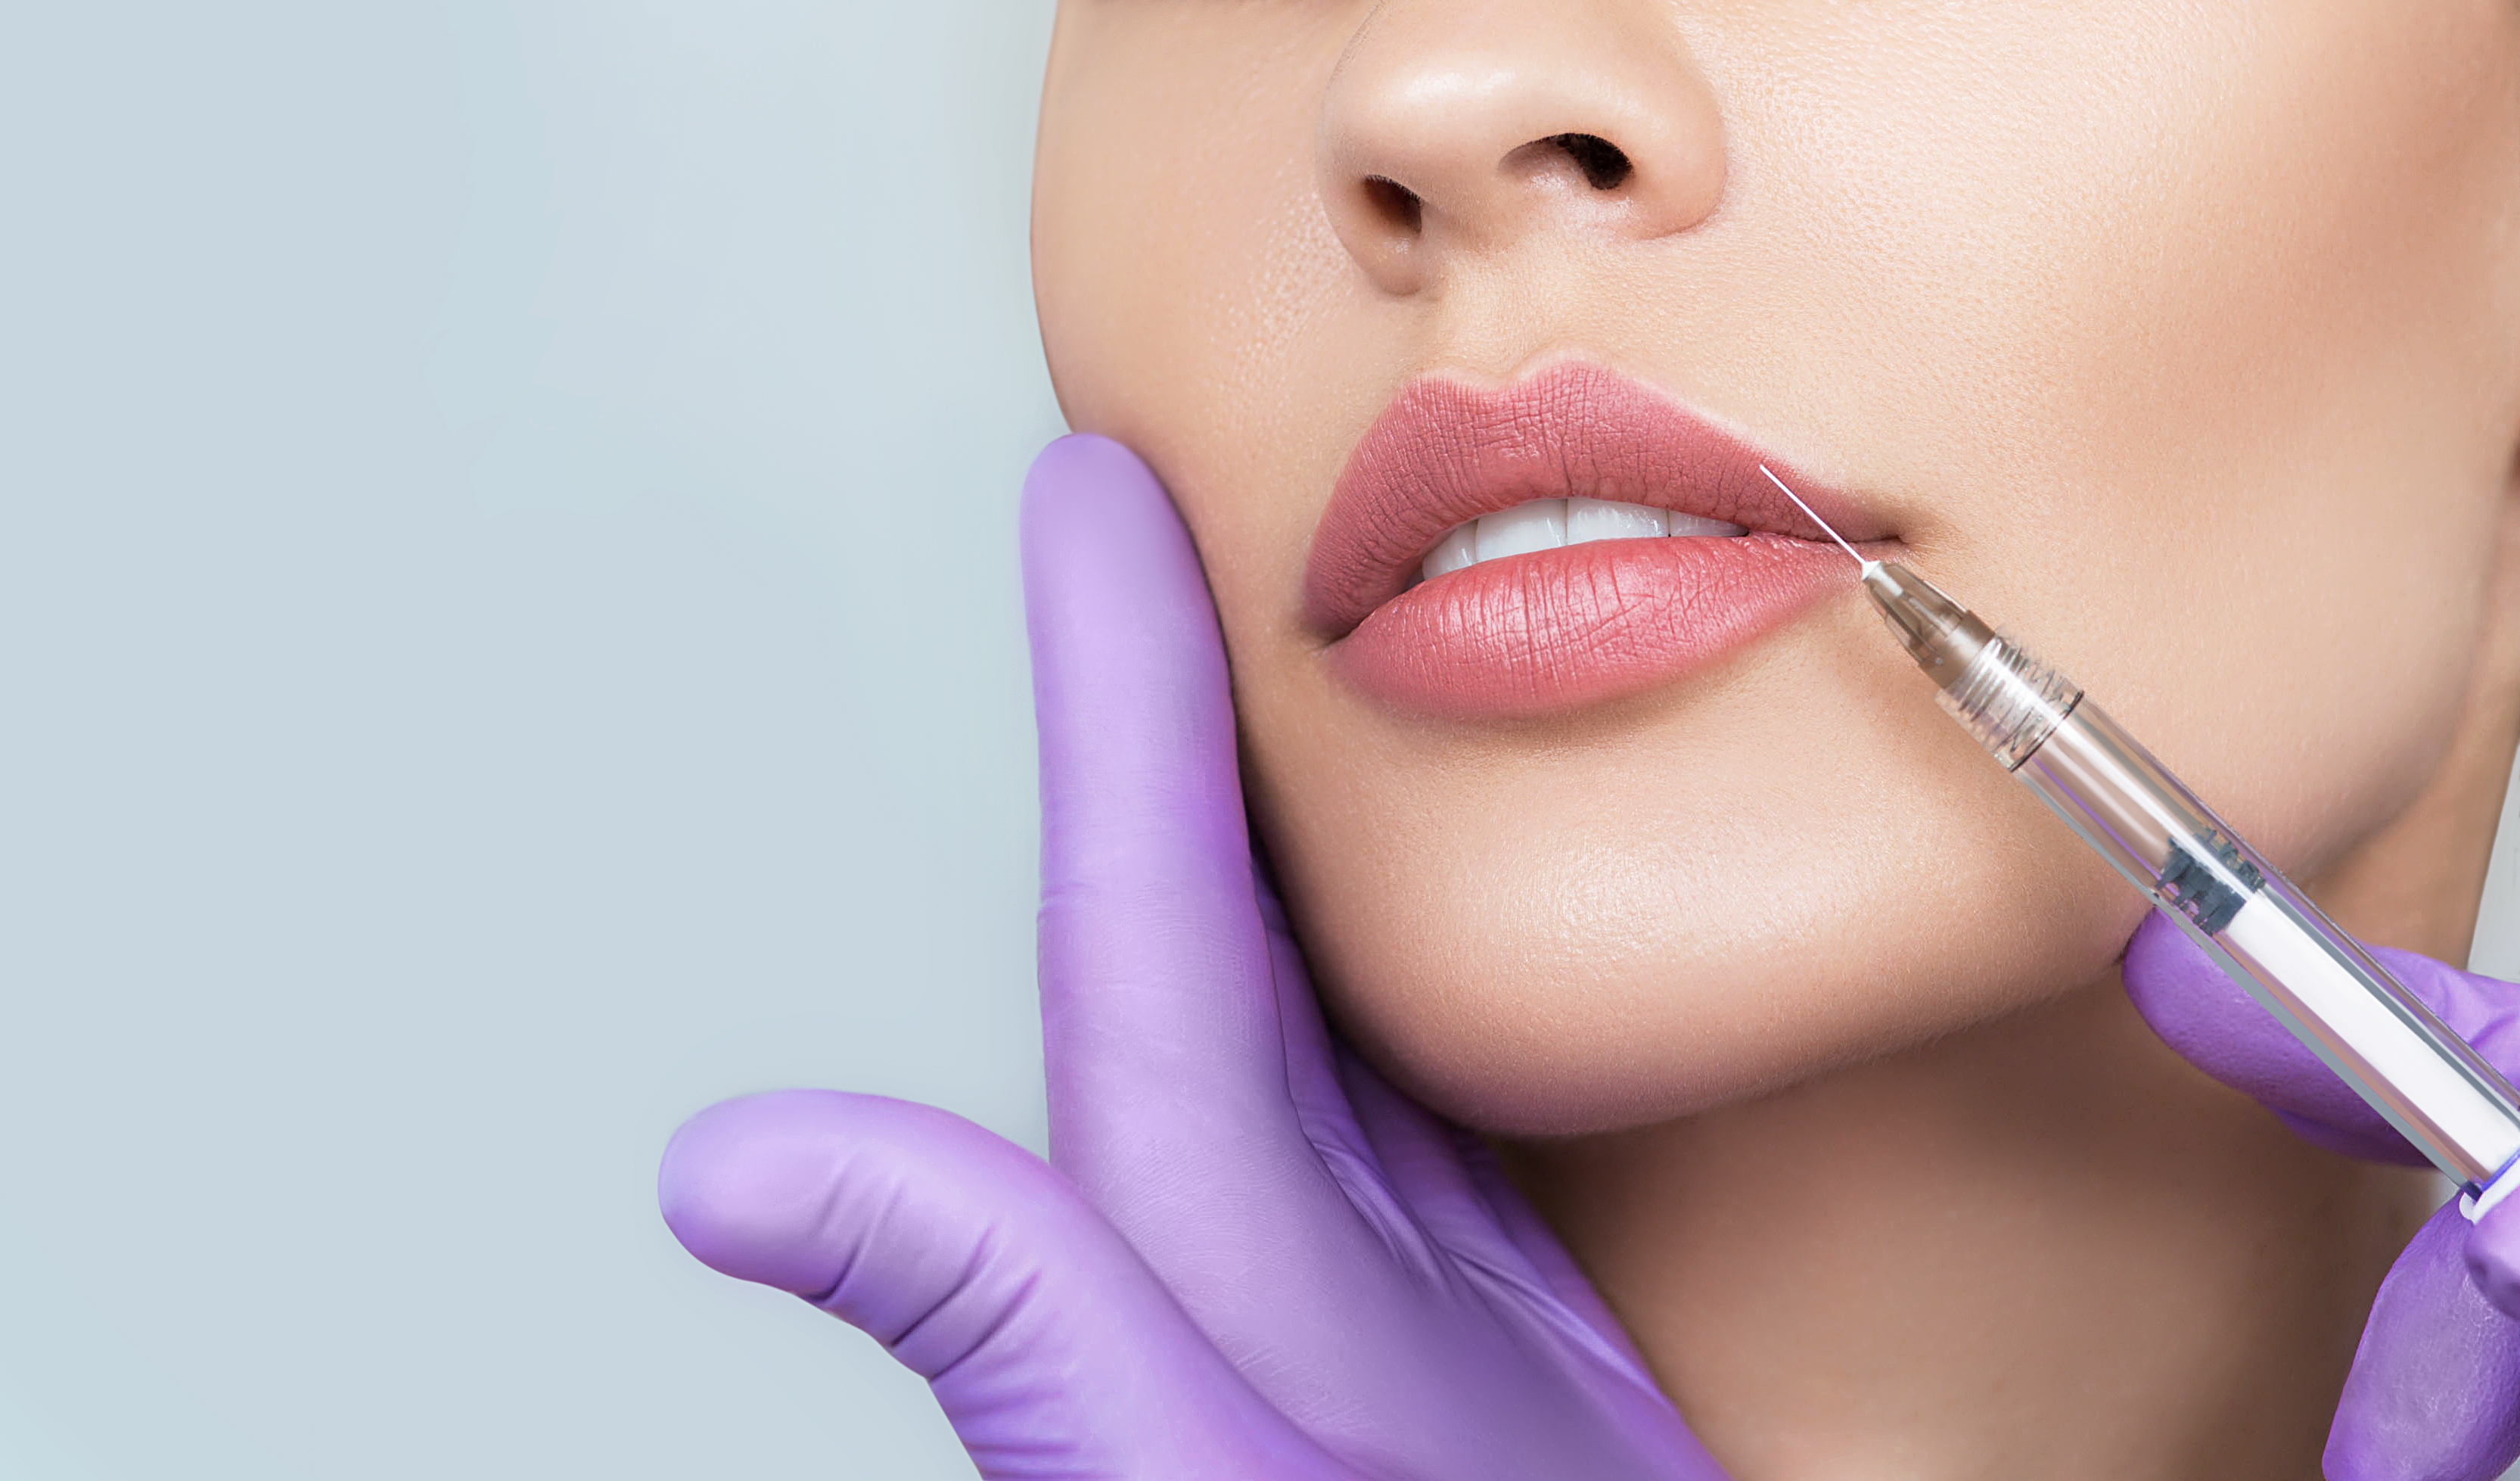 JunoMediSPA Blog | Everything You Need to Know About the Russian Lip Filler Technique